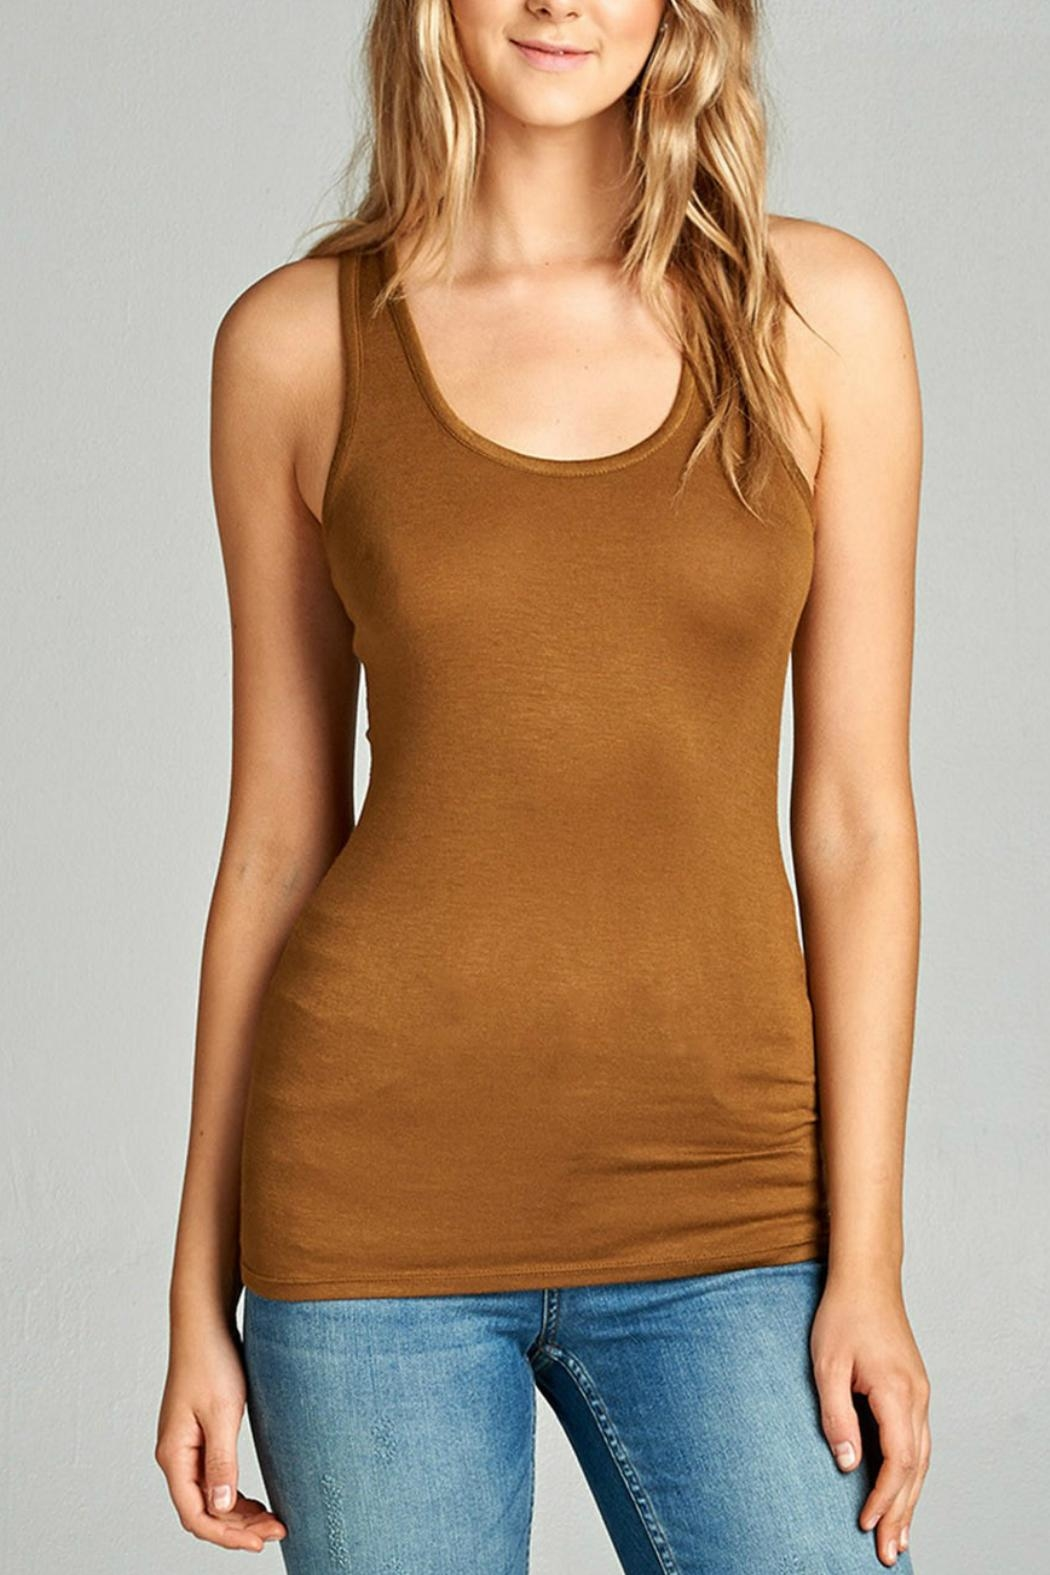 Minx Casual Racerback Tank - Front Cropped Image